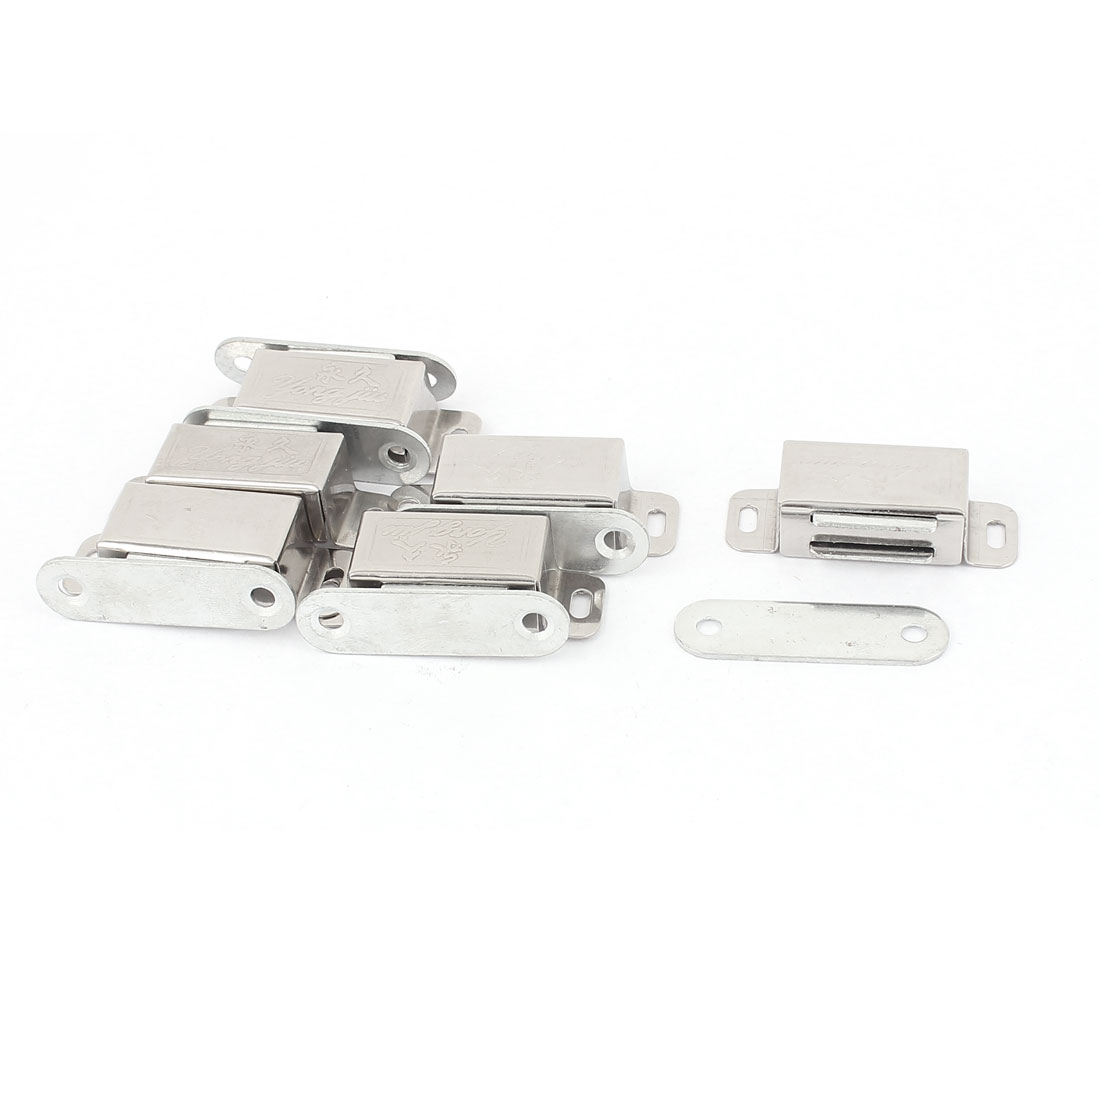 6Pcs Stainless Steel Hardware Cabinet Door Magnetic Catch Latch